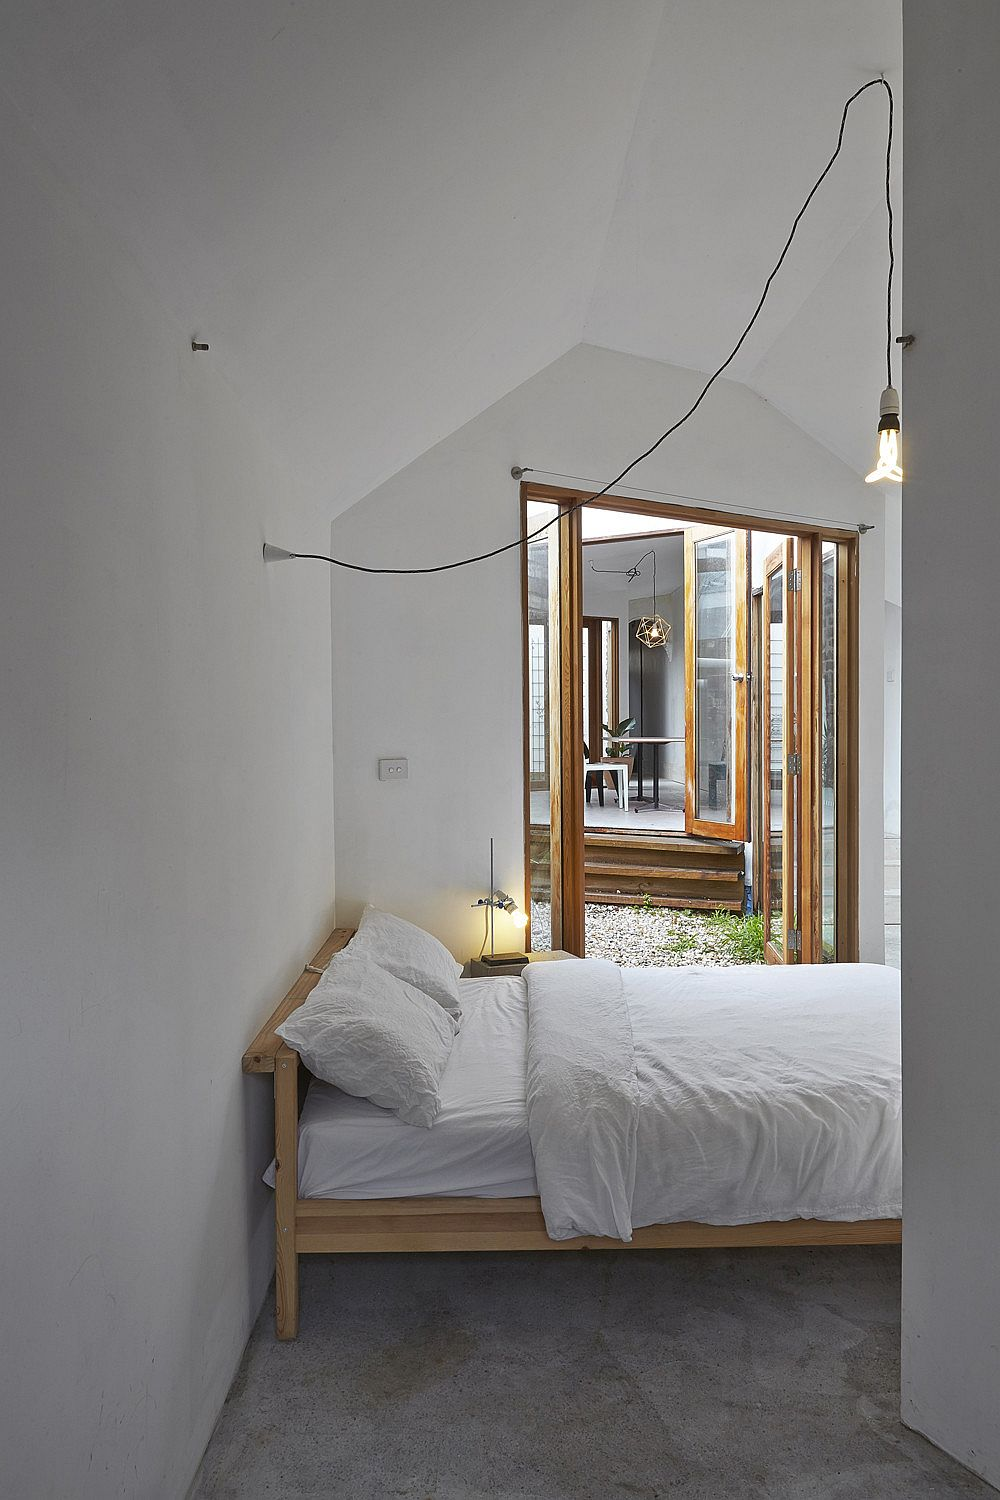 Small-bedroom-deisgn-that-utilized-natural-light-along-with-modest-lighting-47321